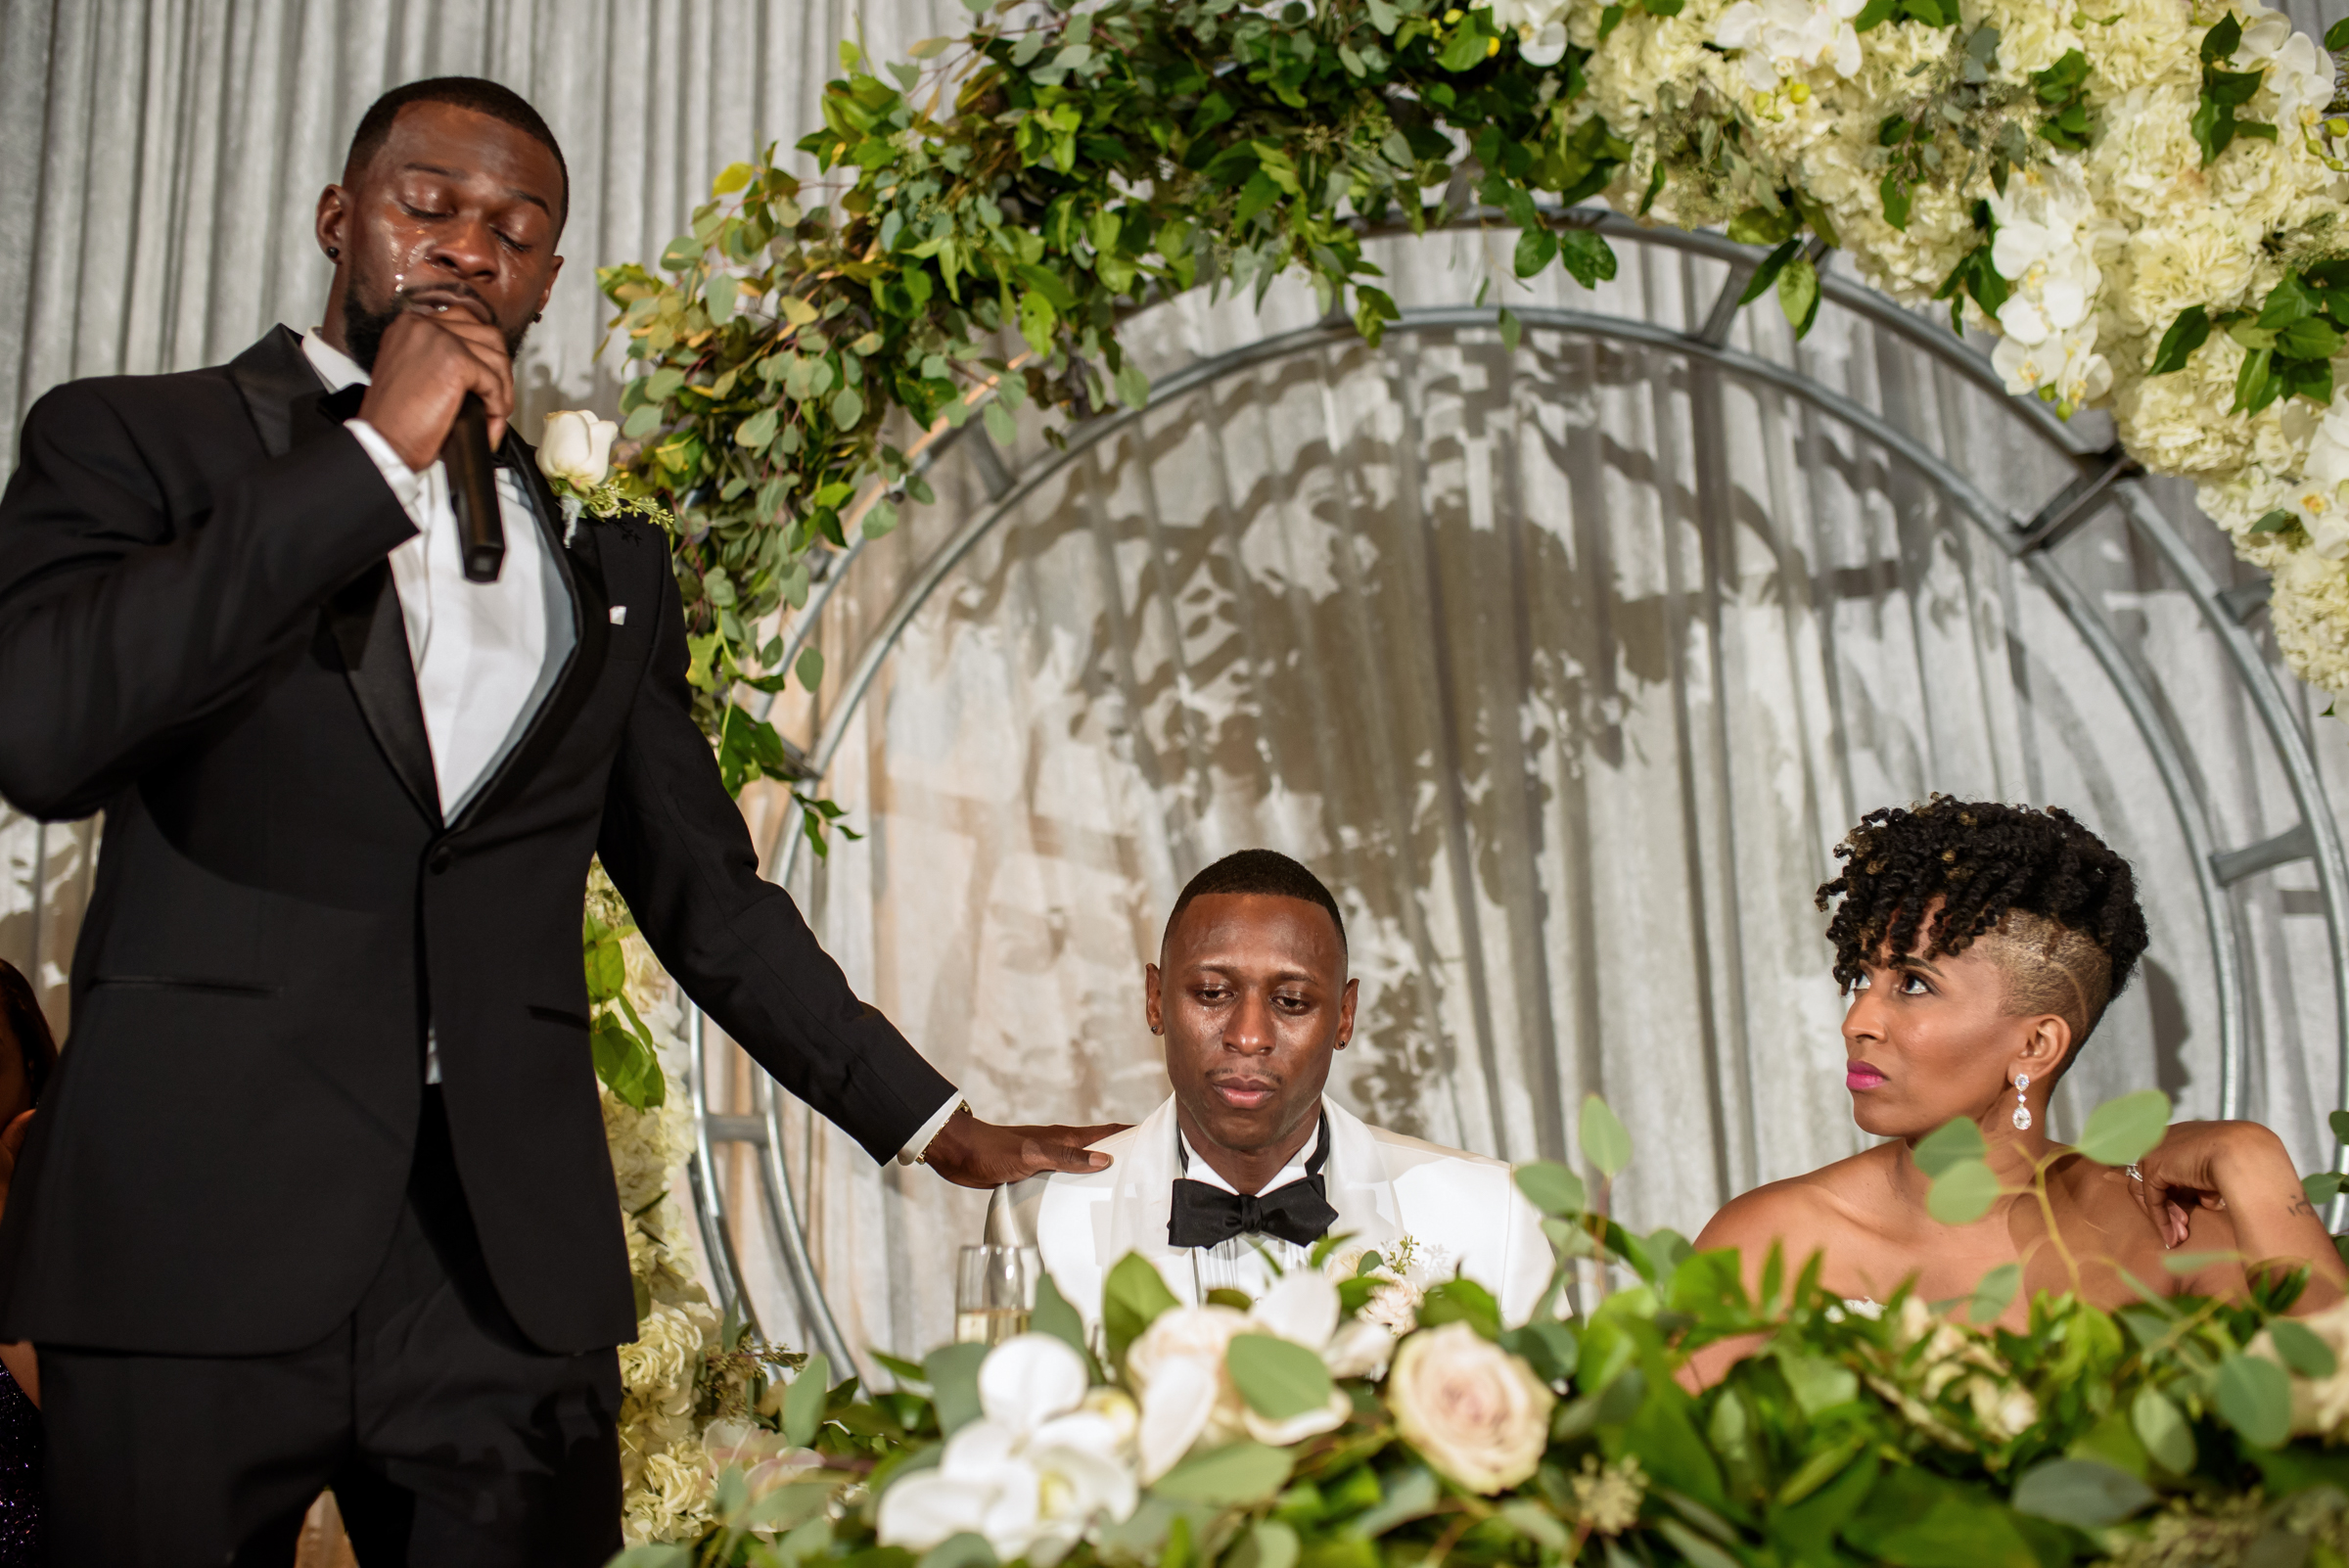 prayer for the couple - photo by Ashleigh Bing Photography